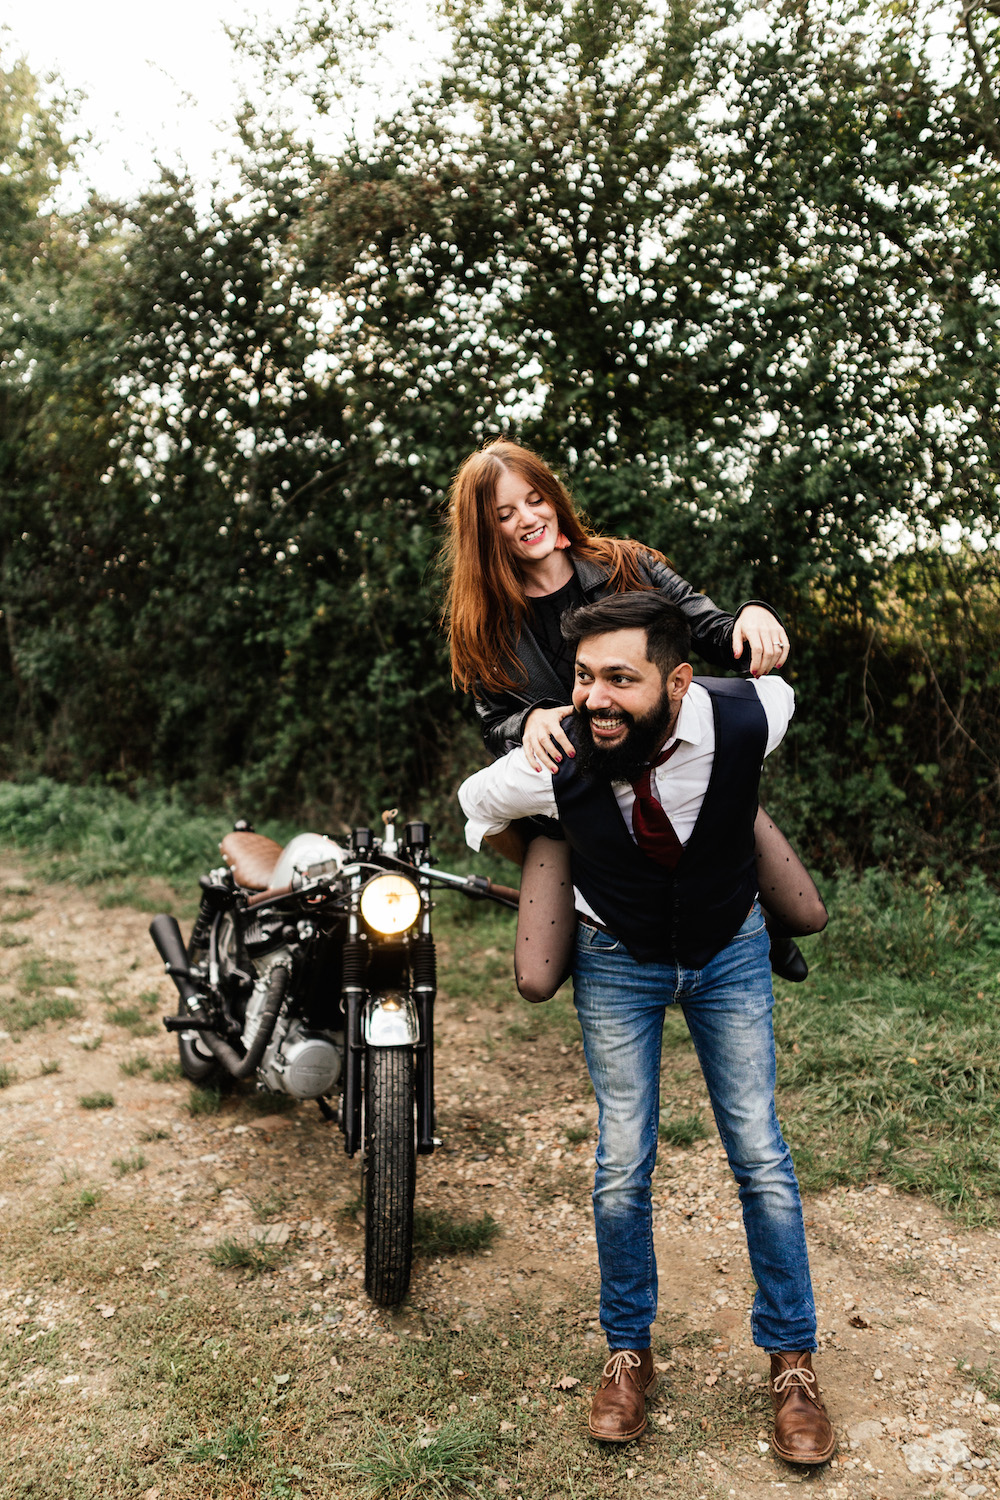 seance-couple-moto-day-after-krystele-donovan-rosefushiaphotographie006